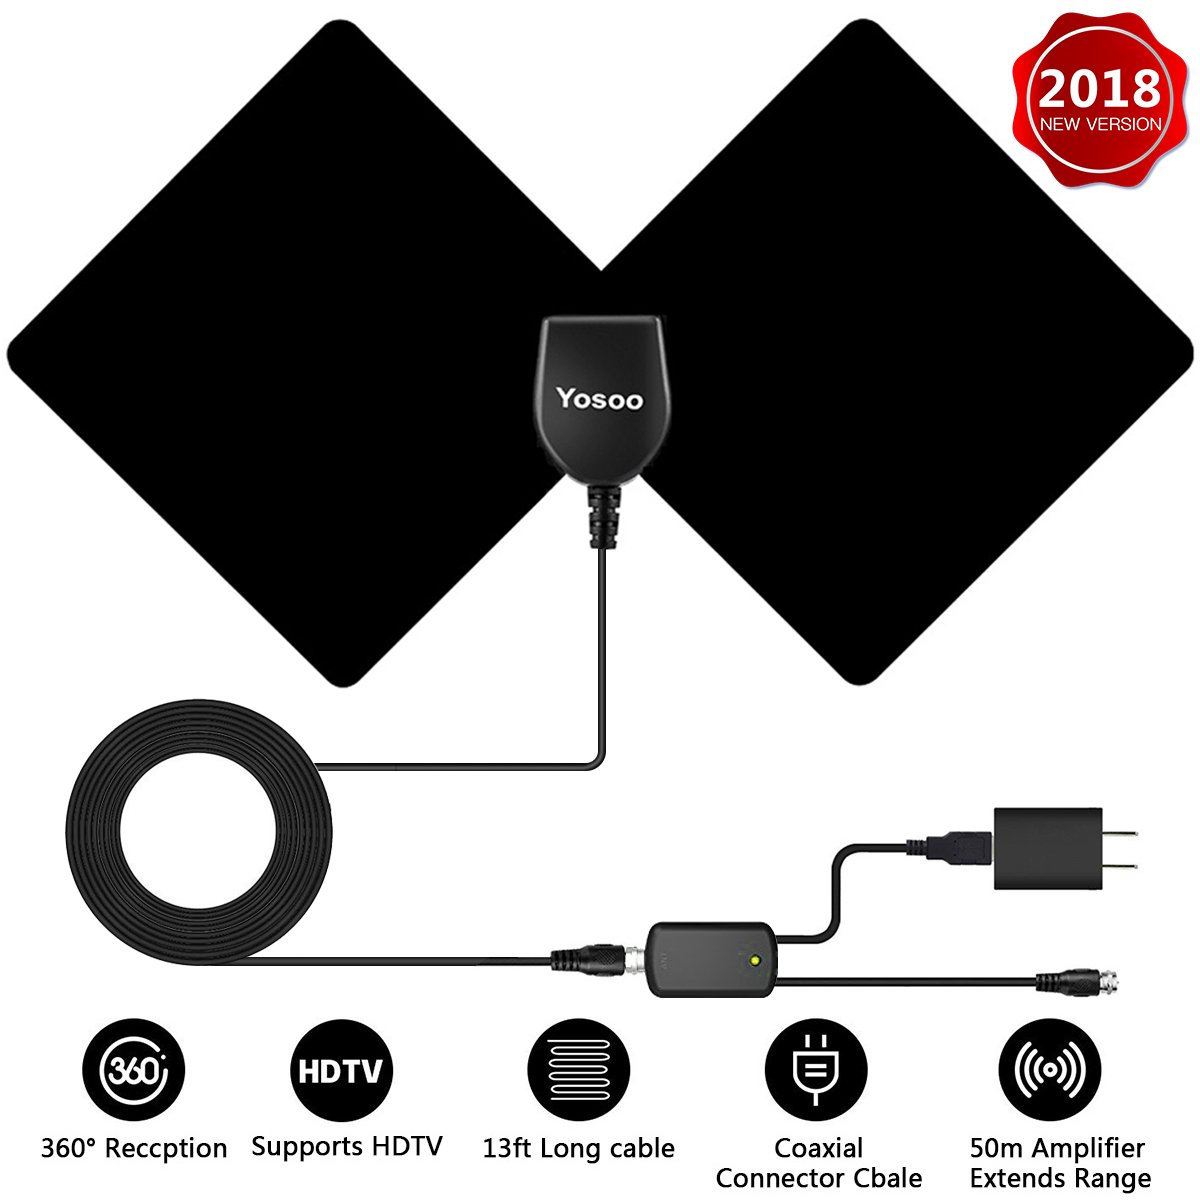 HDTV Antenna, Yosoo Indoor TV Digital Antenna 50 Mile Range with Detachable Amplifier Signal Booster, USB Power Supply and 13ft 1080P High Performance Coaxial Cable (Black)